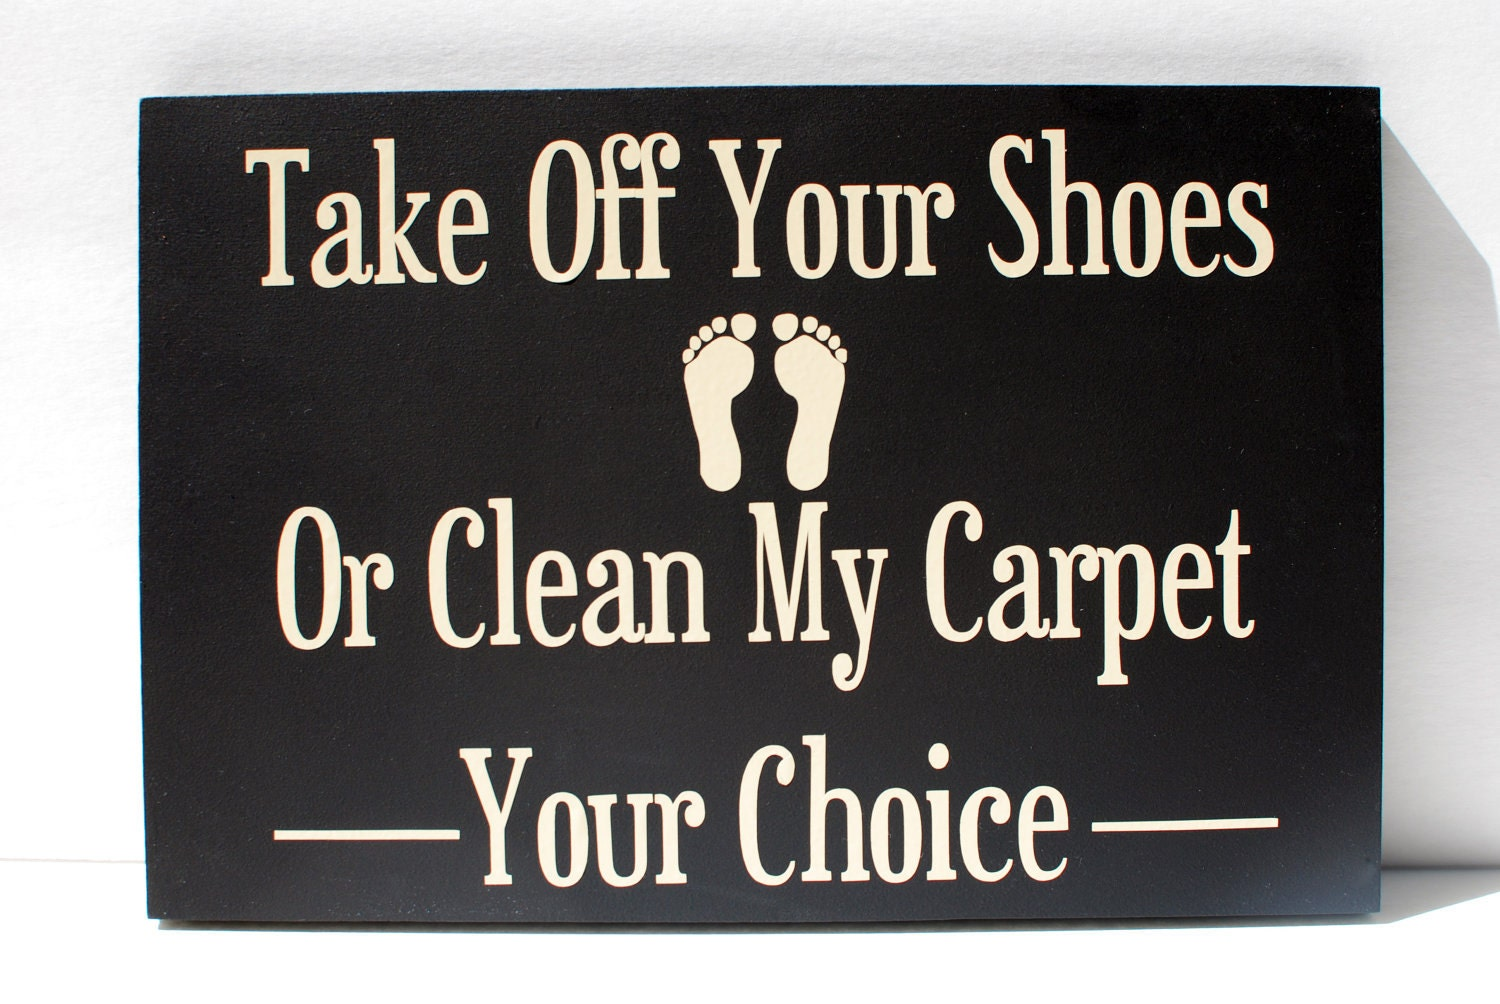 items similar to take off your shoes or clean my carpet wooden sign on etsy. Black Bedroom Furniture Sets. Home Design Ideas